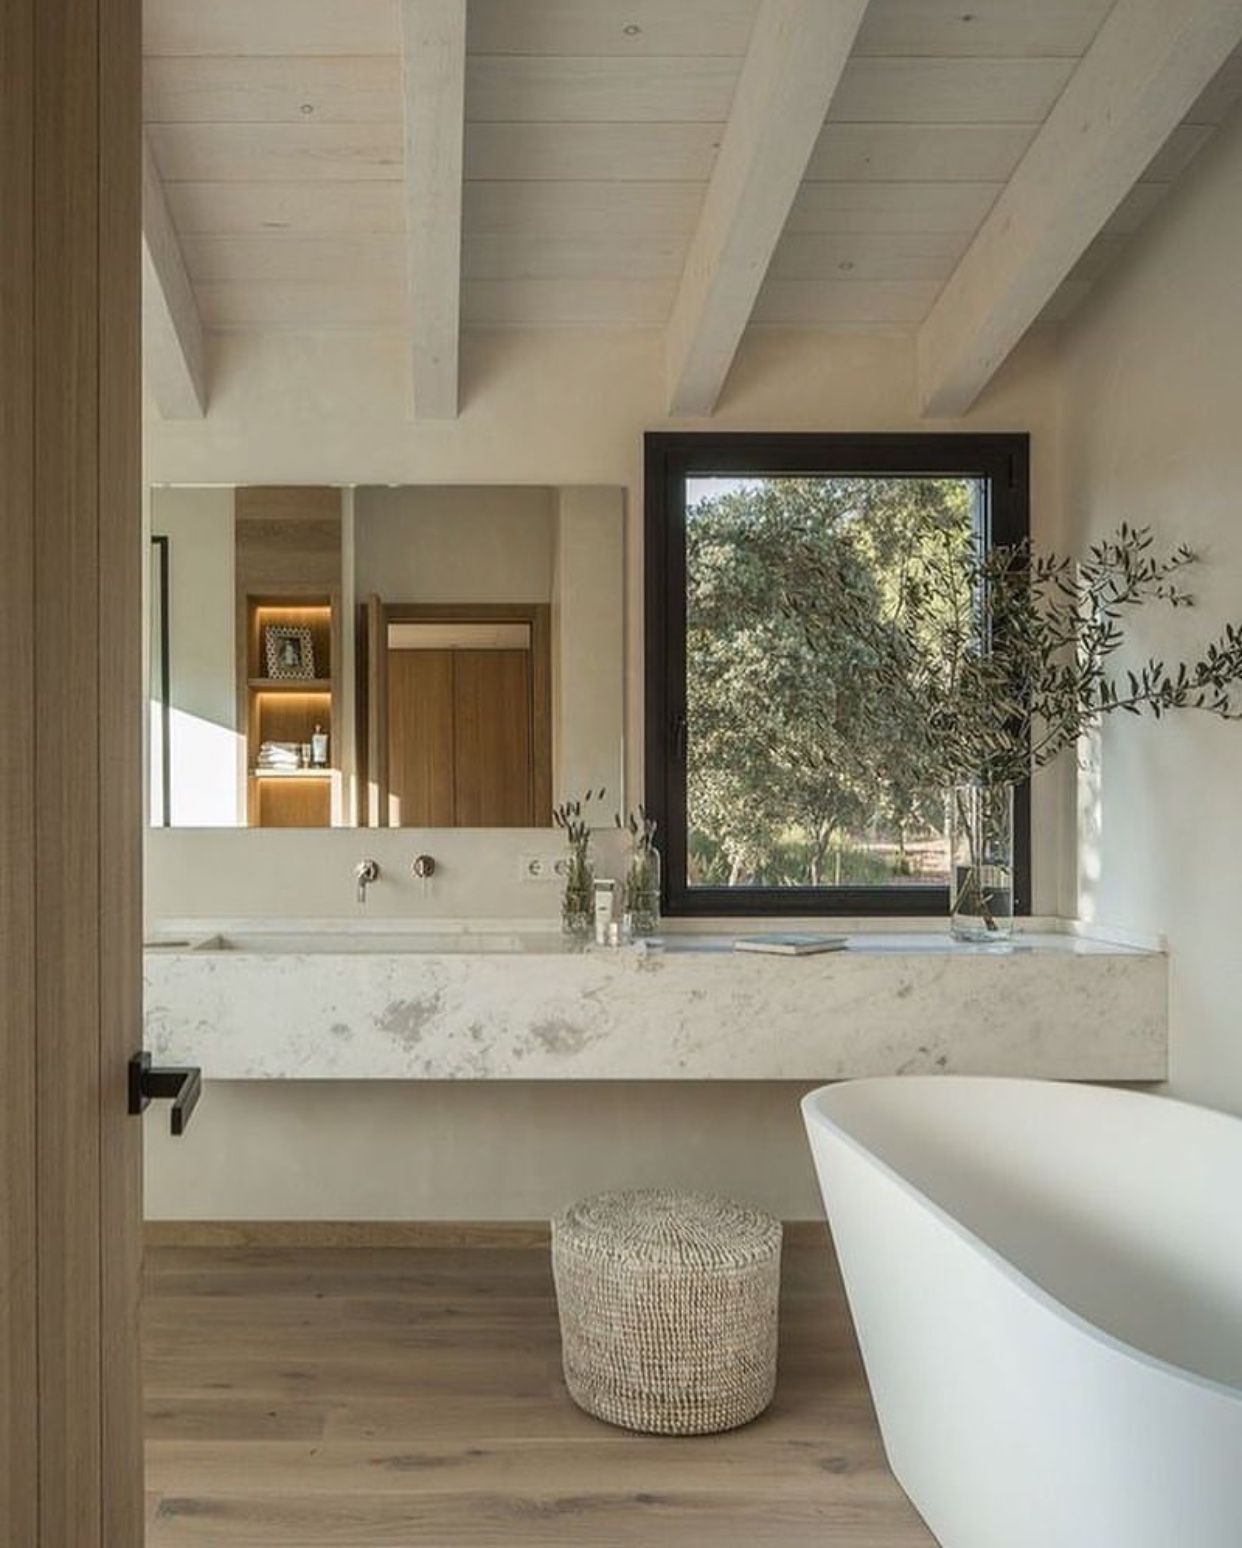 Explore Family Houses Bathroom Inspo and more